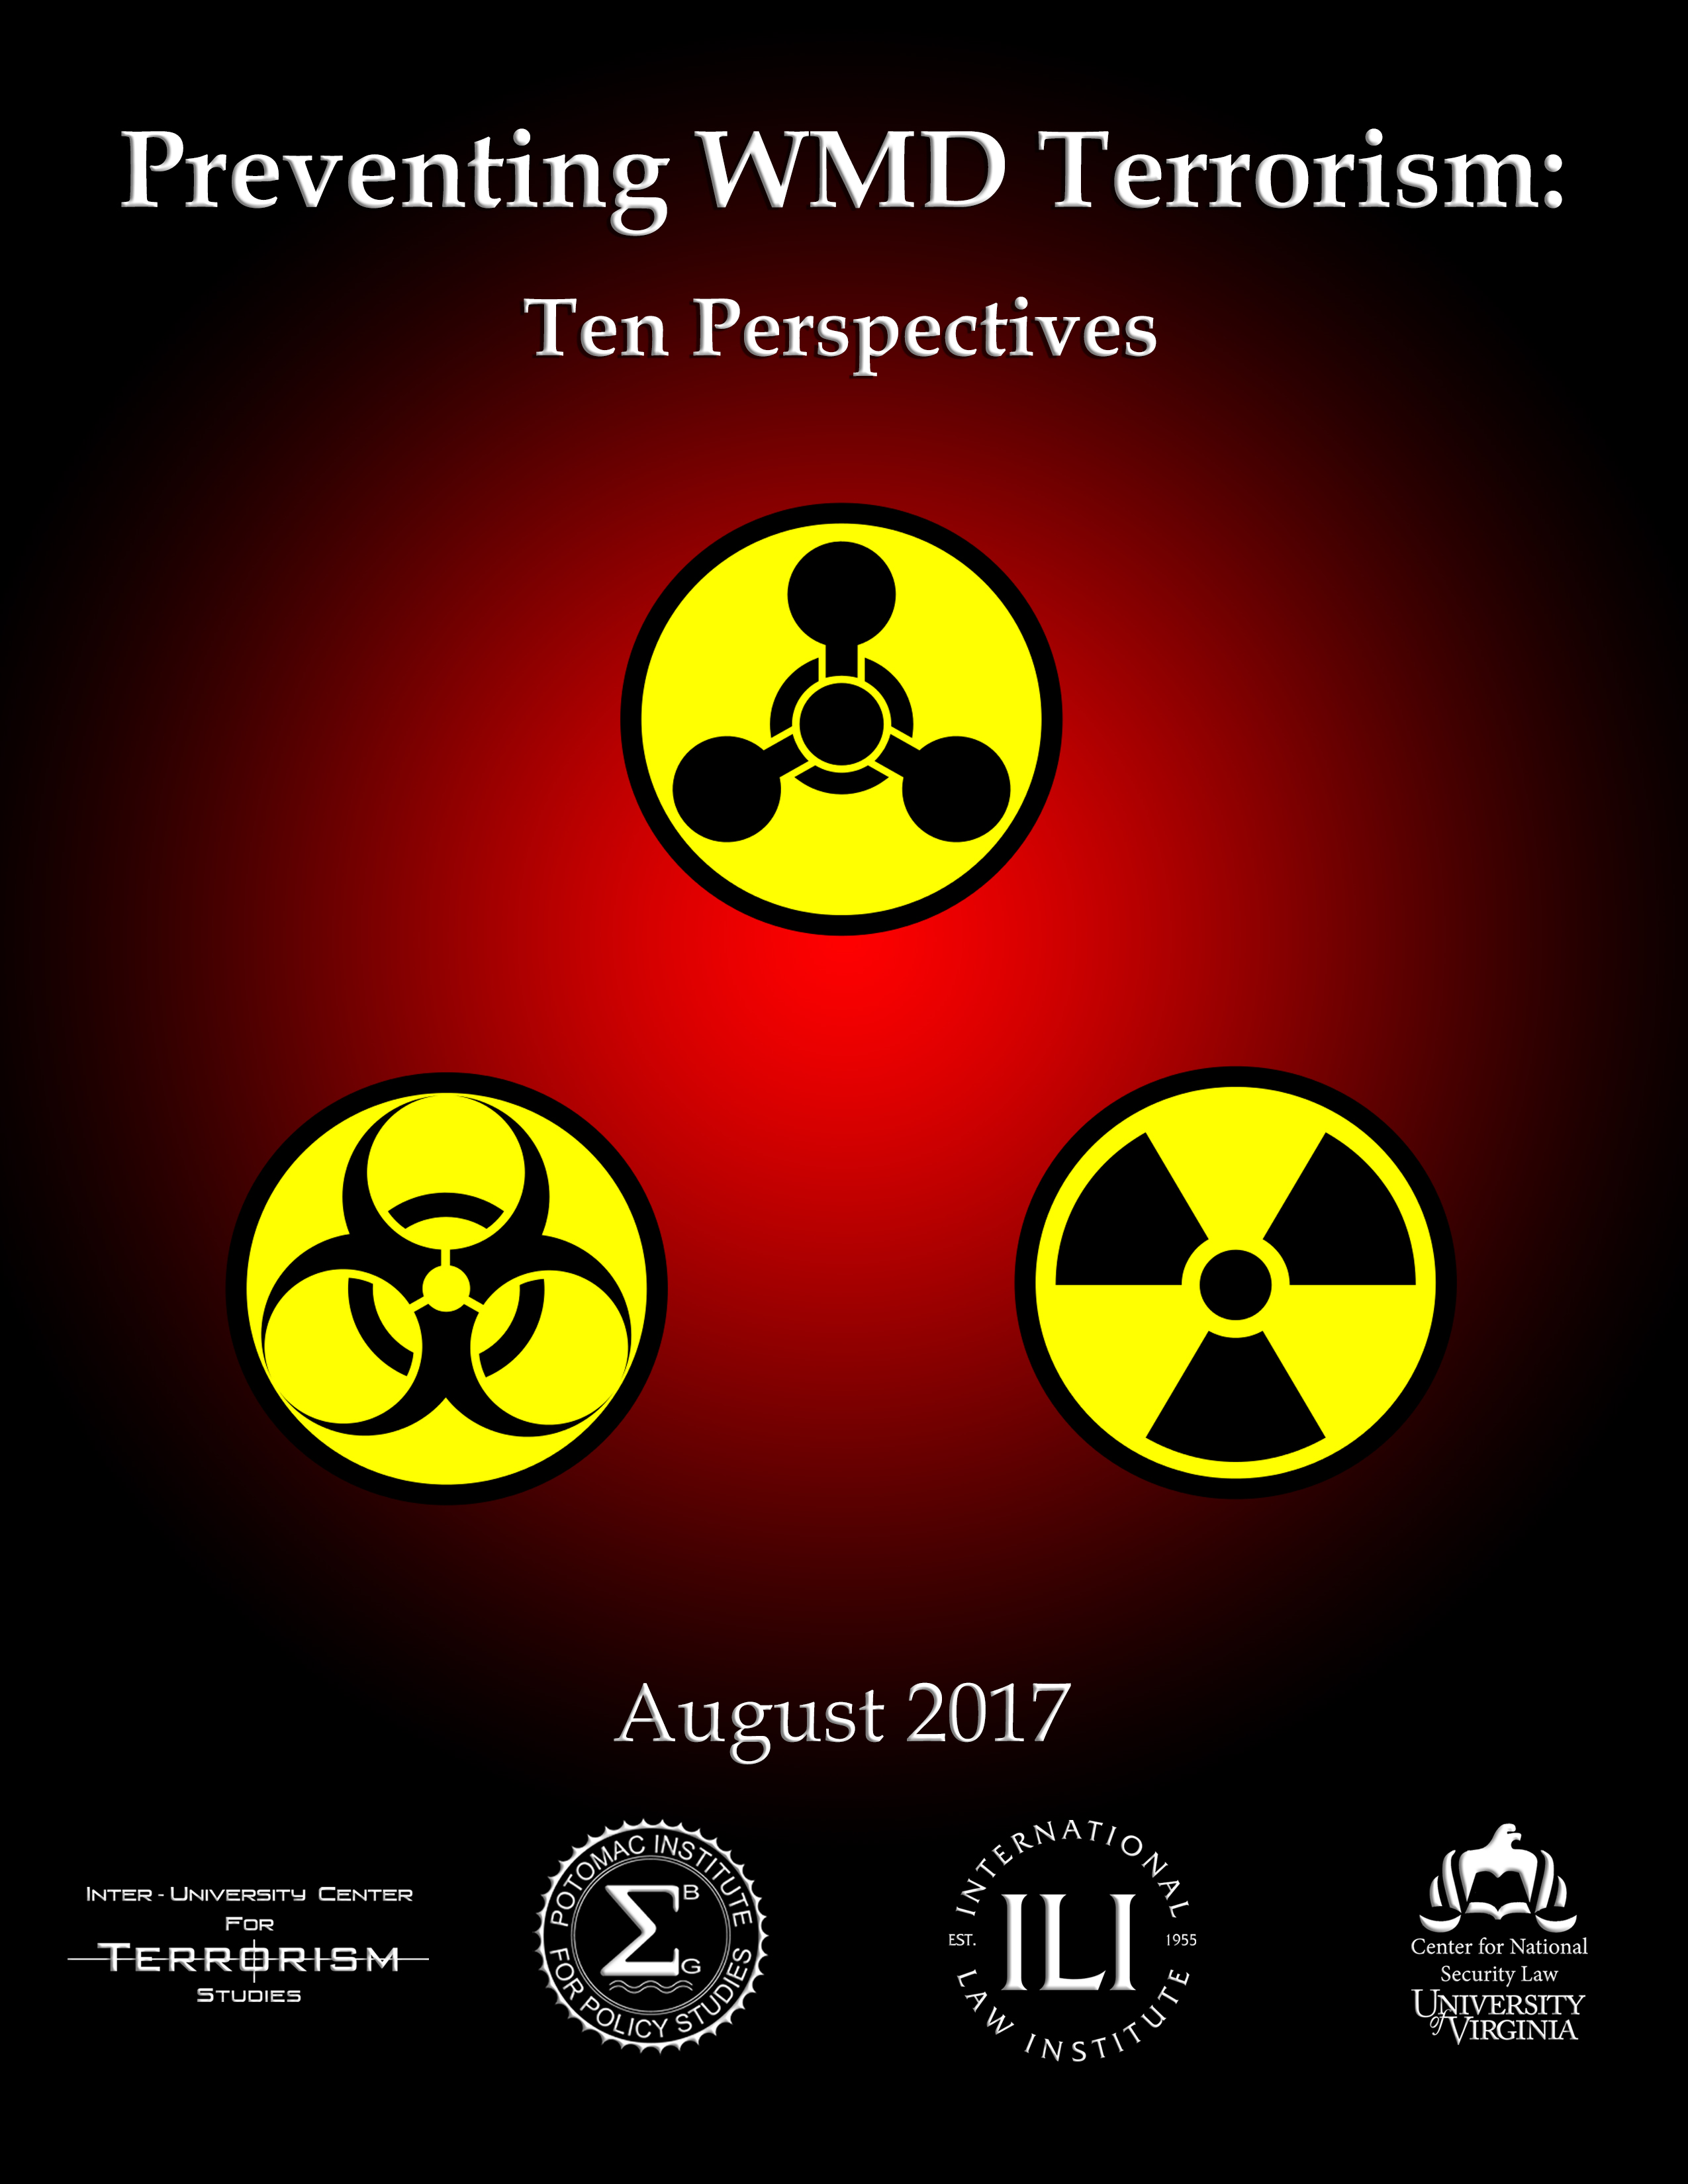 Preventing WMD Terrorism: Ten Perspectives